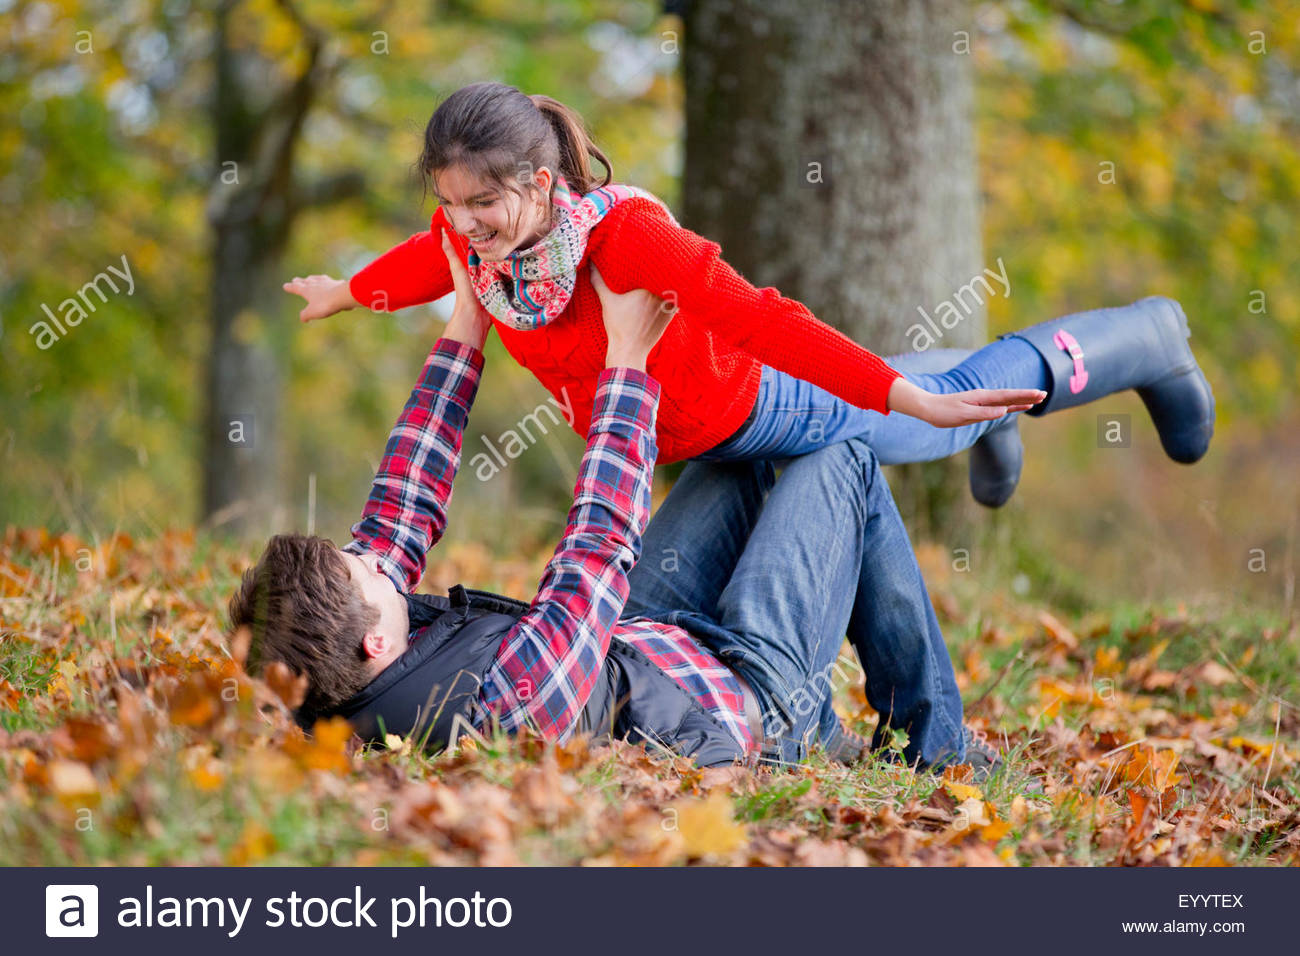 Father holding daughter up like a plane in autumnal park - Stock Image